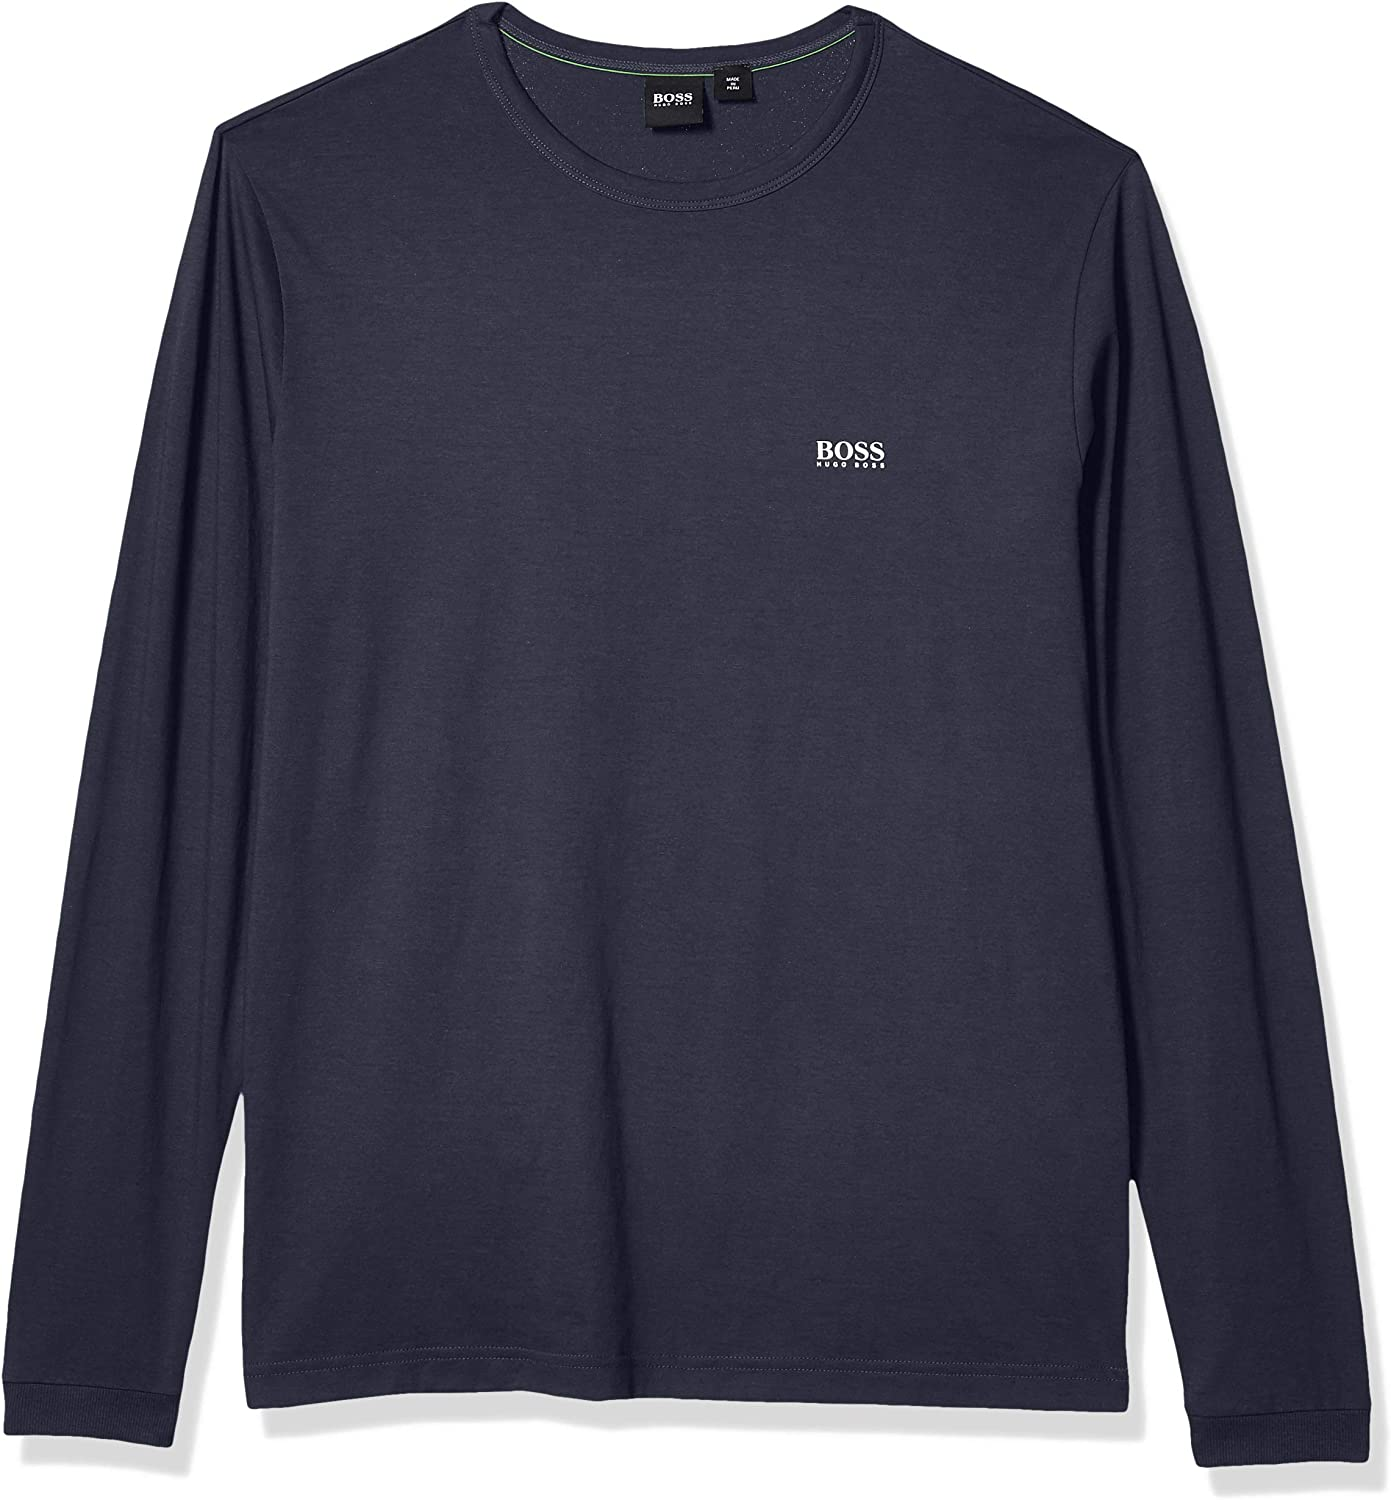 Hugo Boss Mens Crew Neck Long Sleeve Cotton Sweater